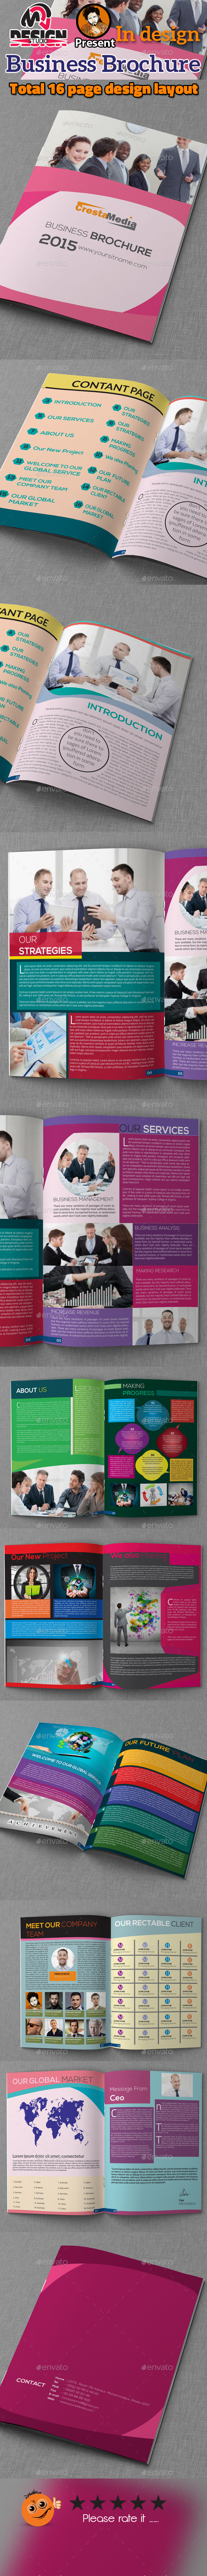 16 Page Business Brochure - Brochures Print Templates